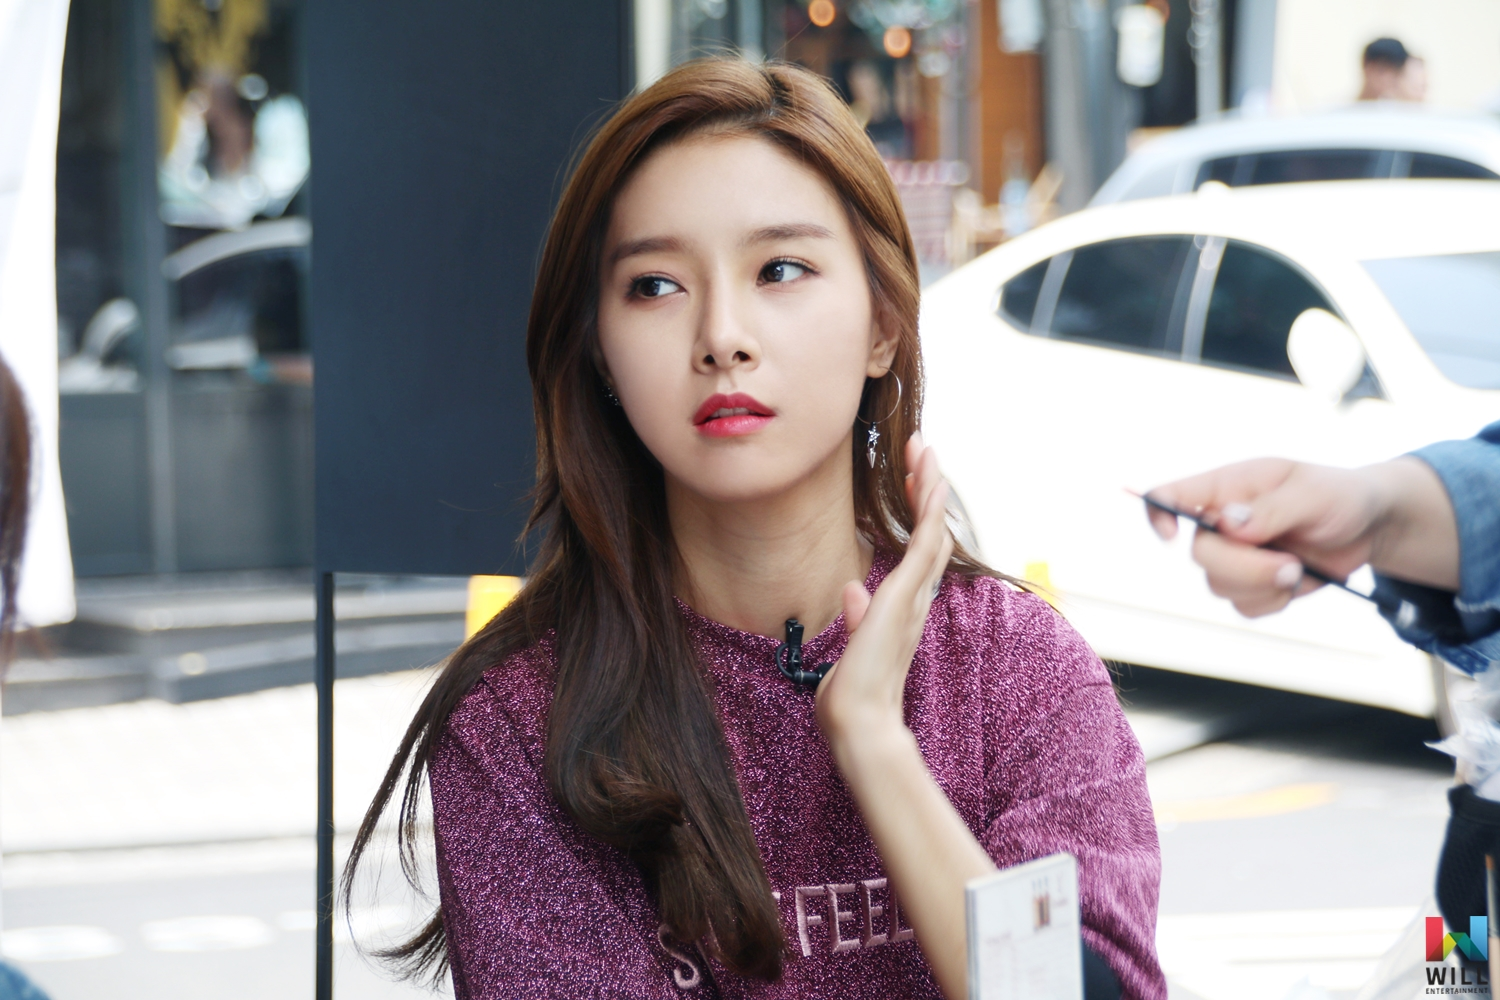 Profil dan Daftar Drama Kim So Eun, Aktris Pemeran Lee Na Eun di 'Love is Annoying, But I Hate Being Lonely'